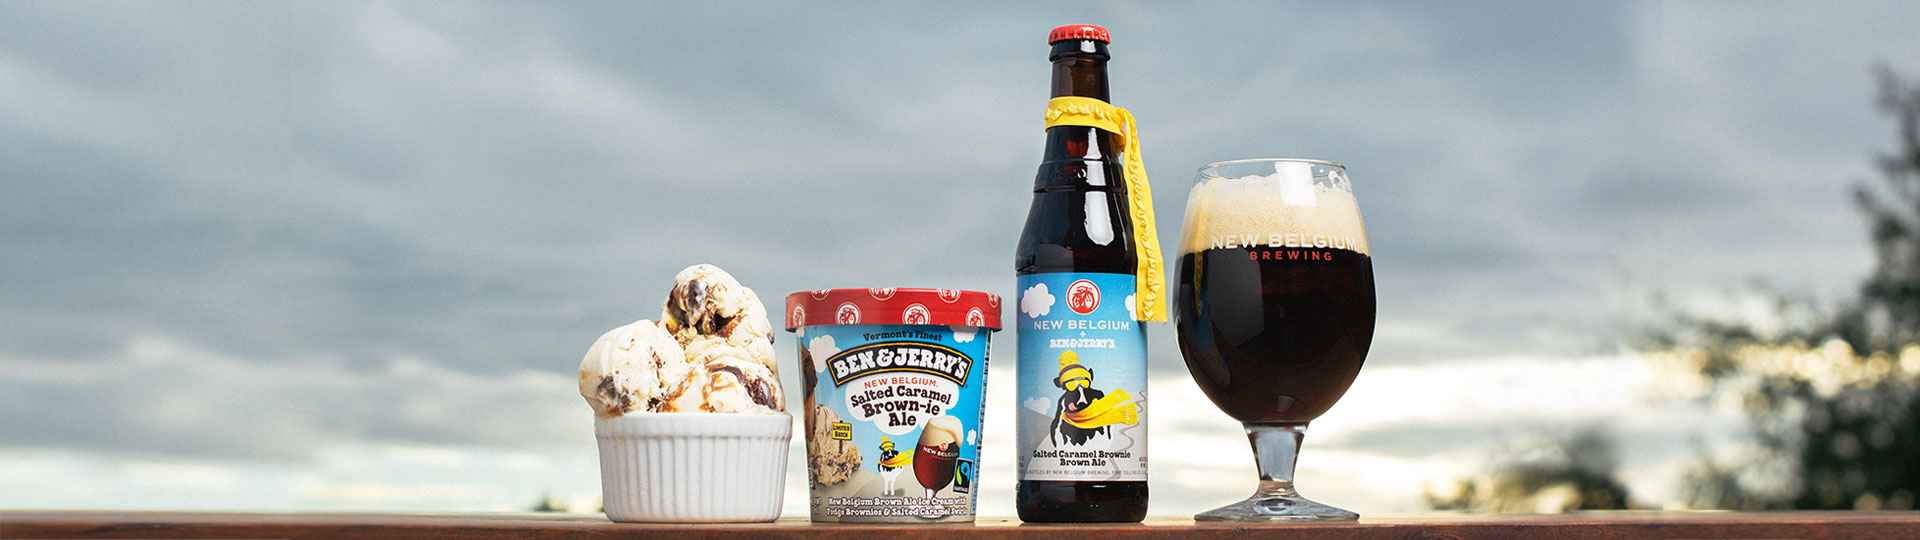 Ben & Jerry's + New Belgium - Social Impact - WhyWhisper Collective